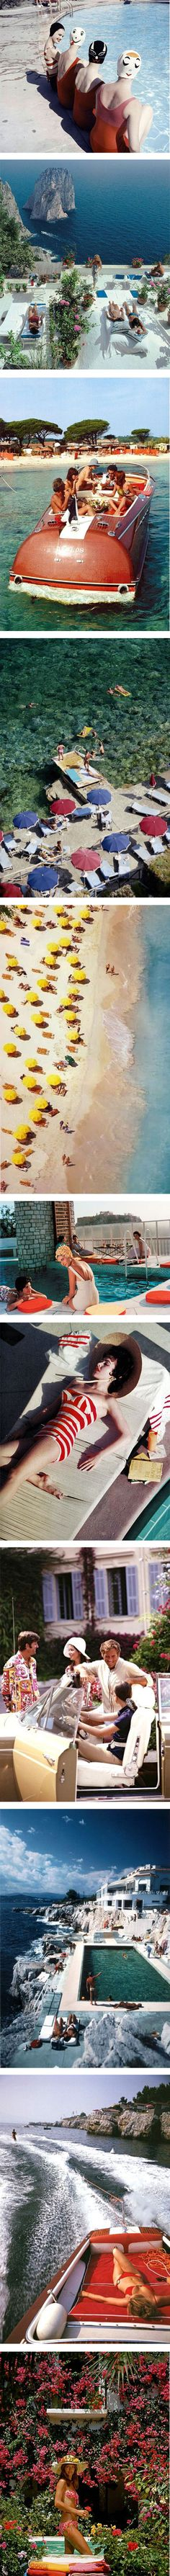 Summer vibes by Slim Aarons on Nuji.com #slimaarons #summervibes #photography